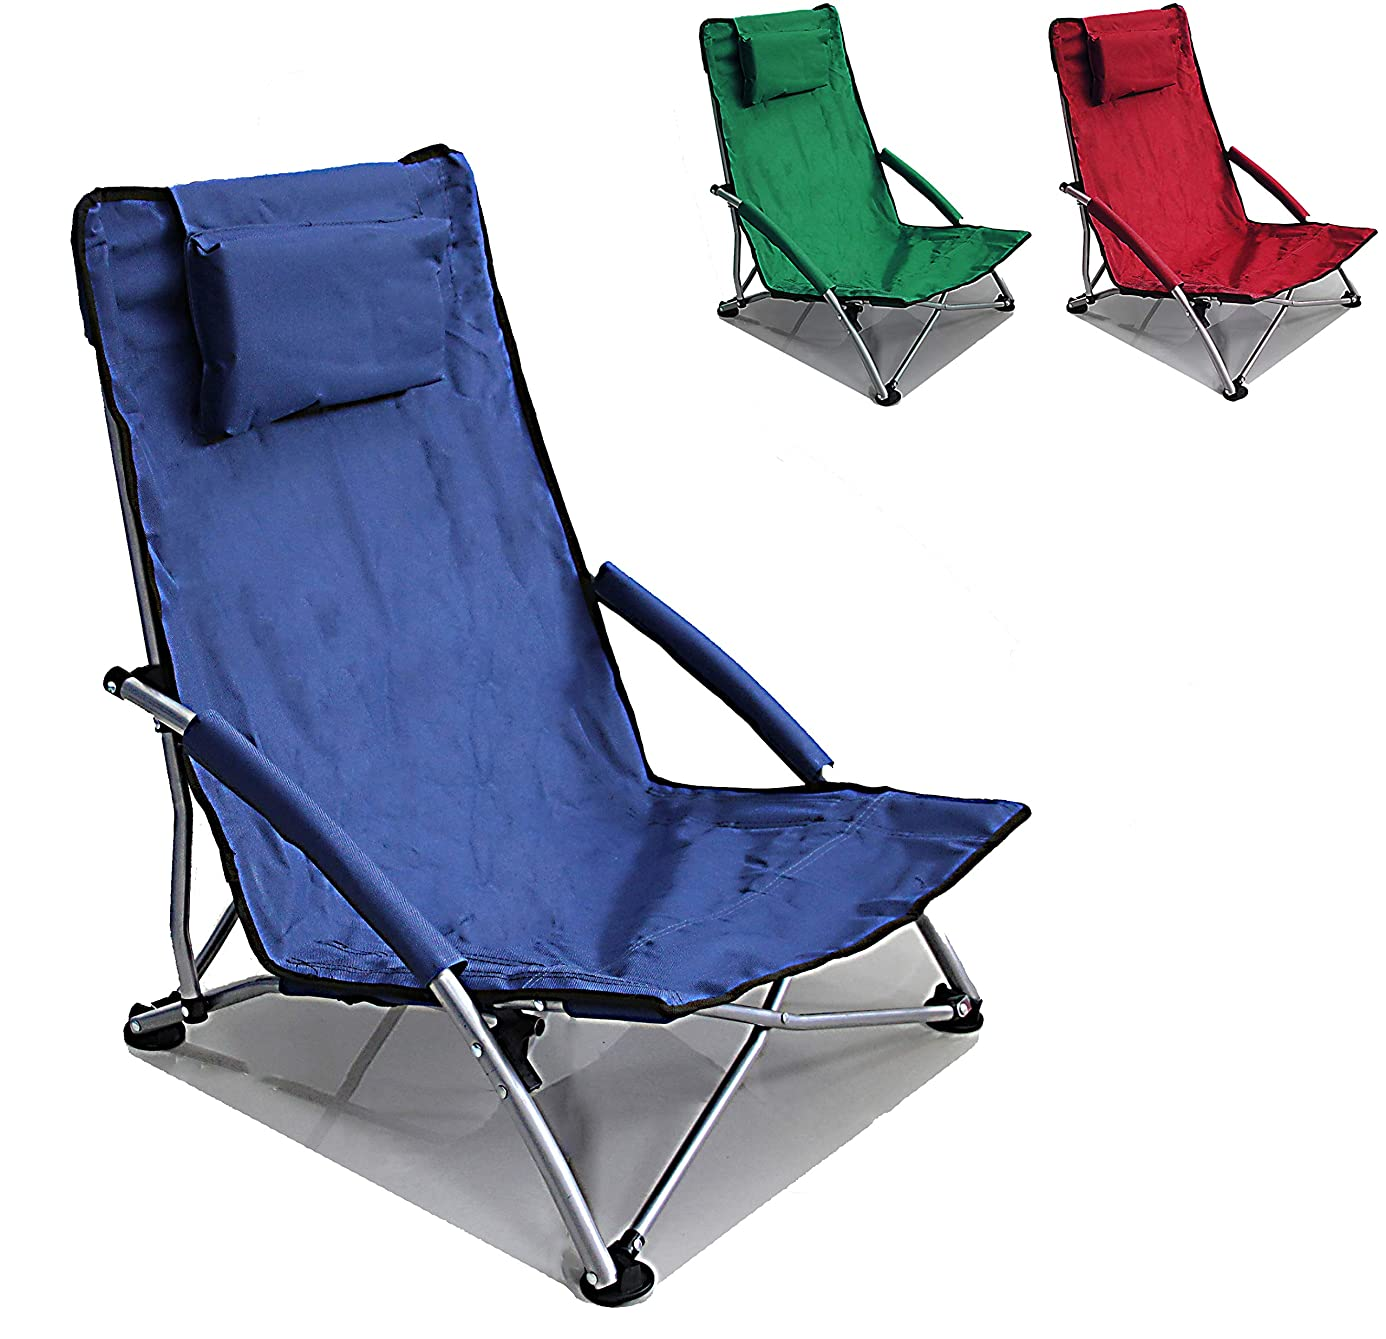 Low Sling Beach Chair Folding Campfire Camping Sand Chair